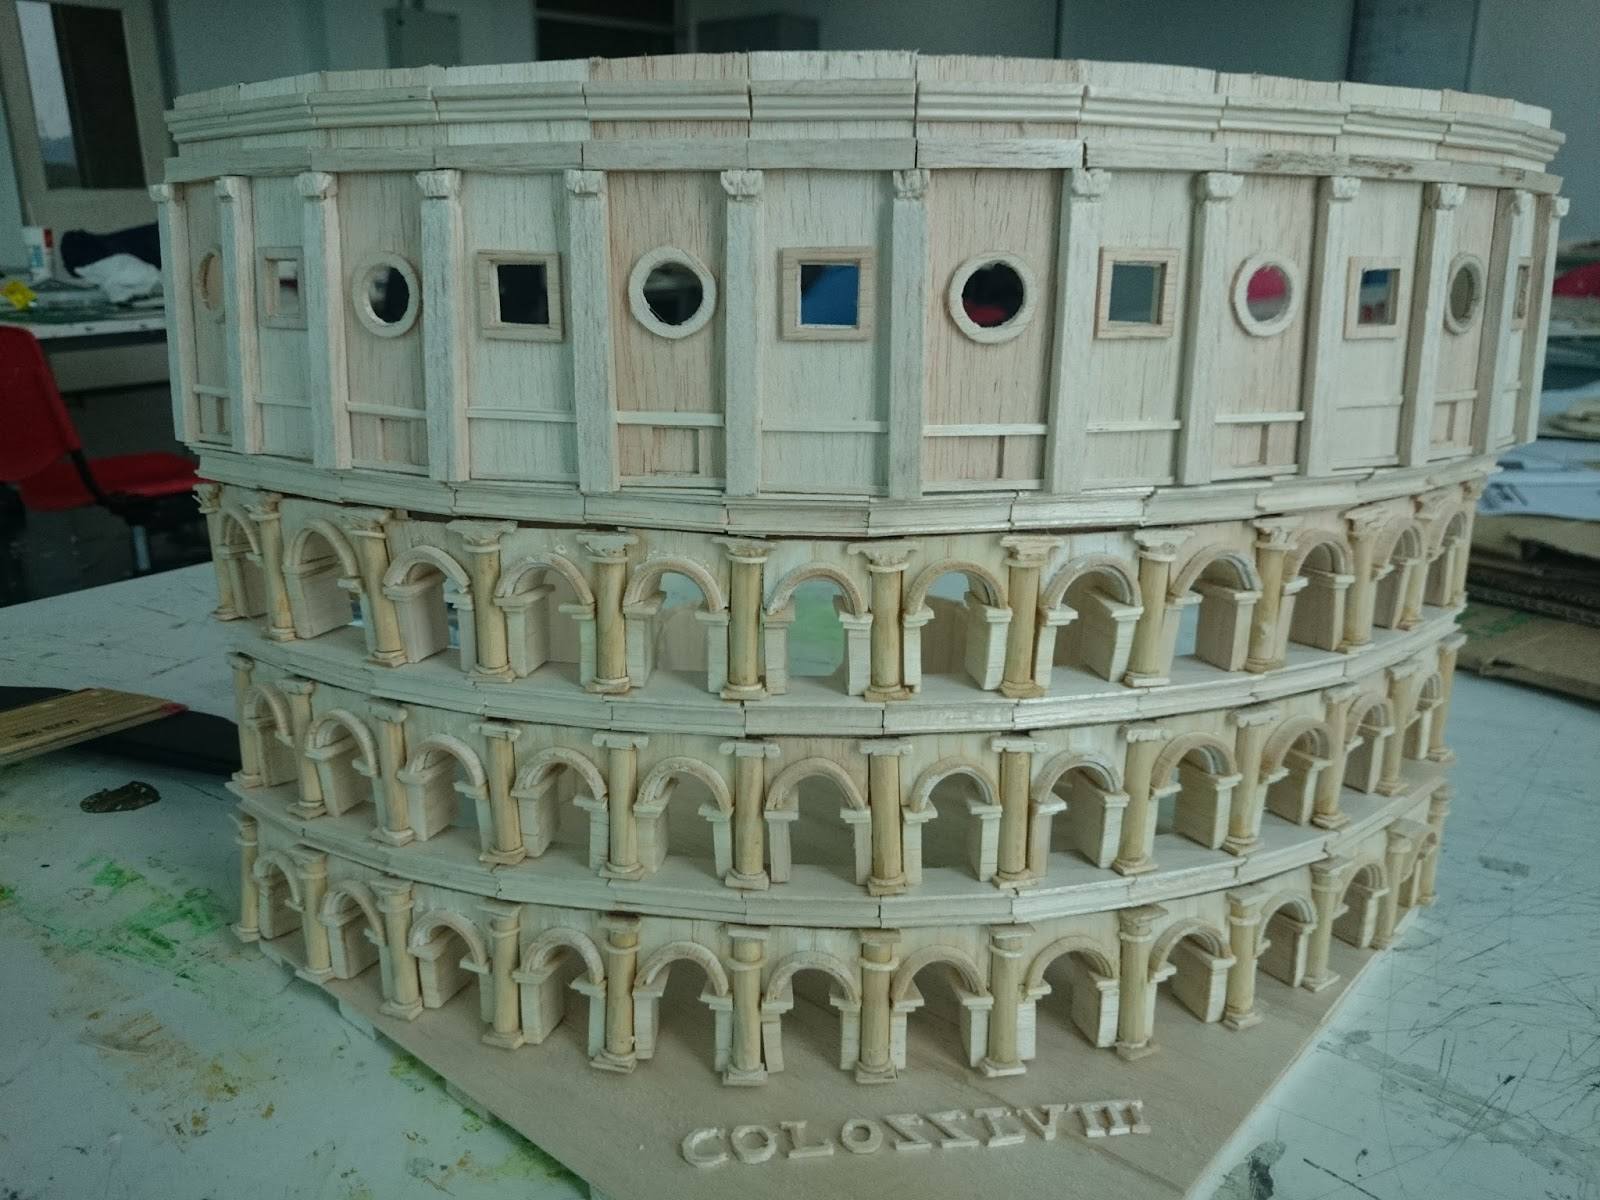 an analysis of the design of colosseum Come and see the world with your very own 3d-printed roman colosseum this completely detailed model that i created in cad catia and analyzed in netfabb basics can complete any desk space, or counter top, to bring a piece of italy to your house.